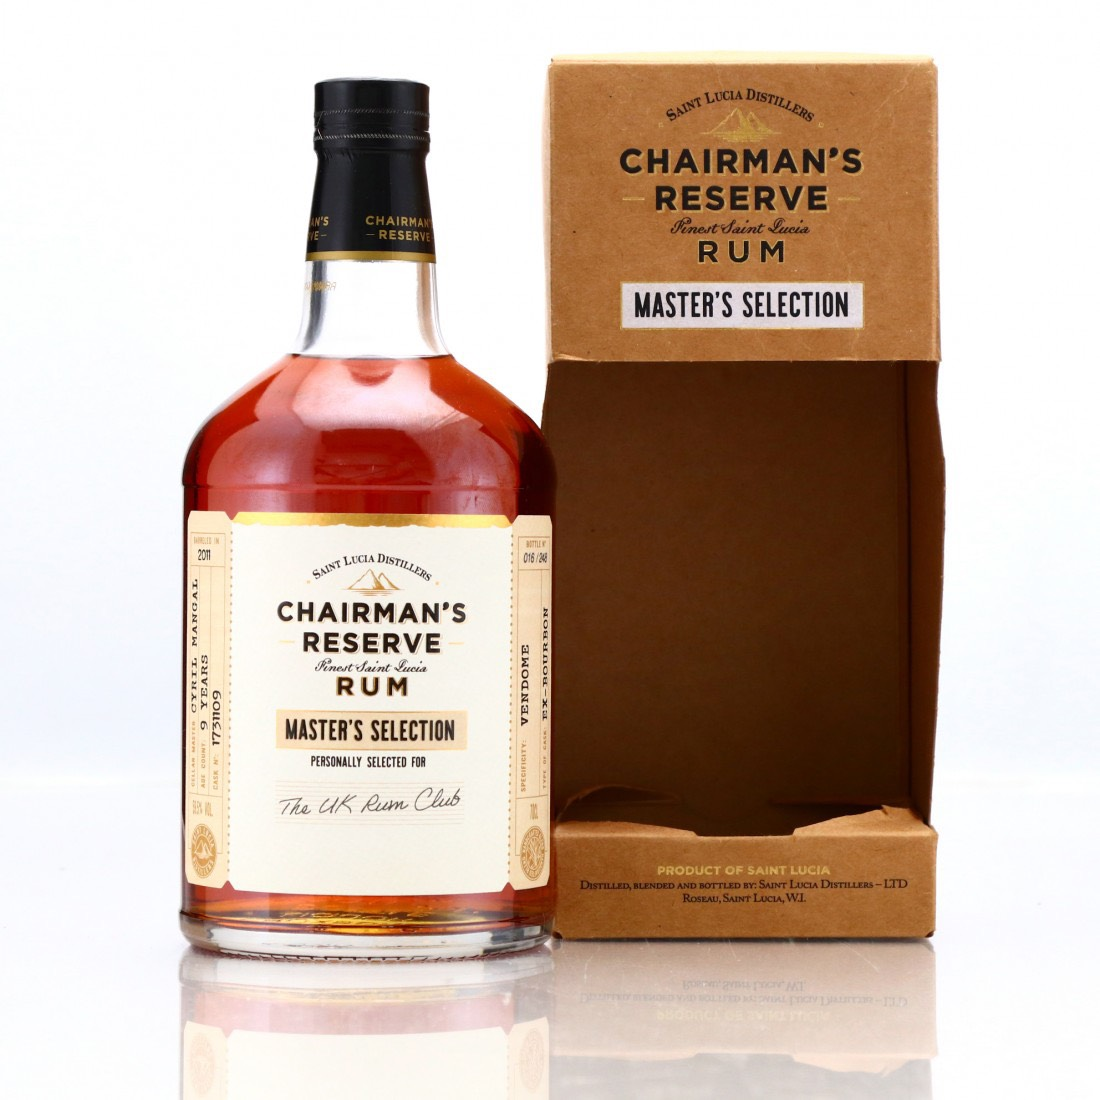 Bottle image of Chairman's Reserve Master's Selection (The UK Rum Club)